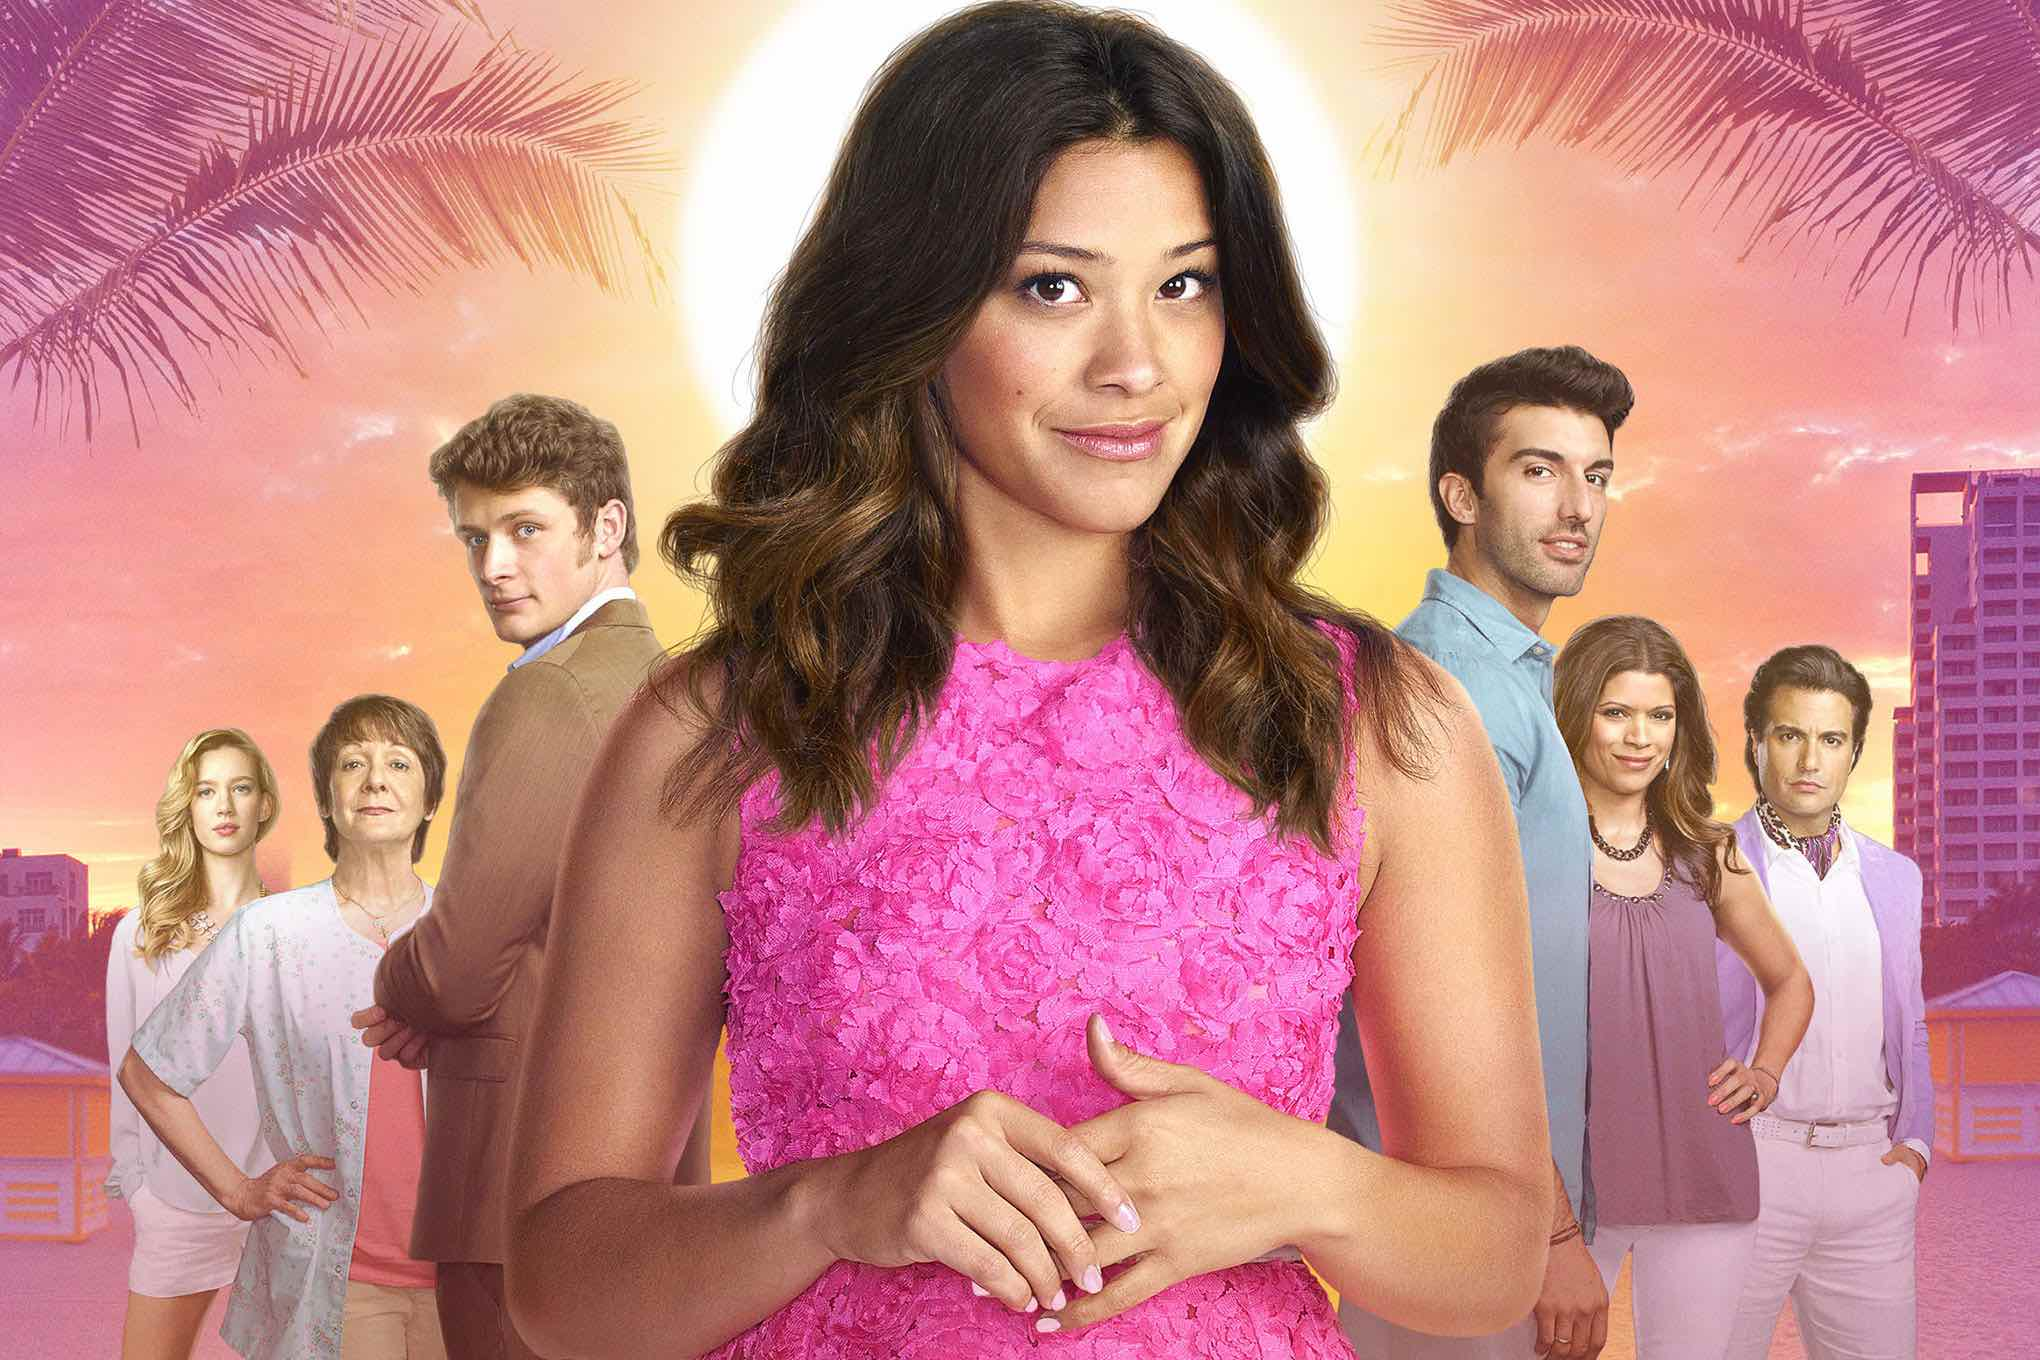 For those who need a little more of their favorite telenovela family from 'Jane the Virgin' in their lives, here's where you can find your favorites soon.